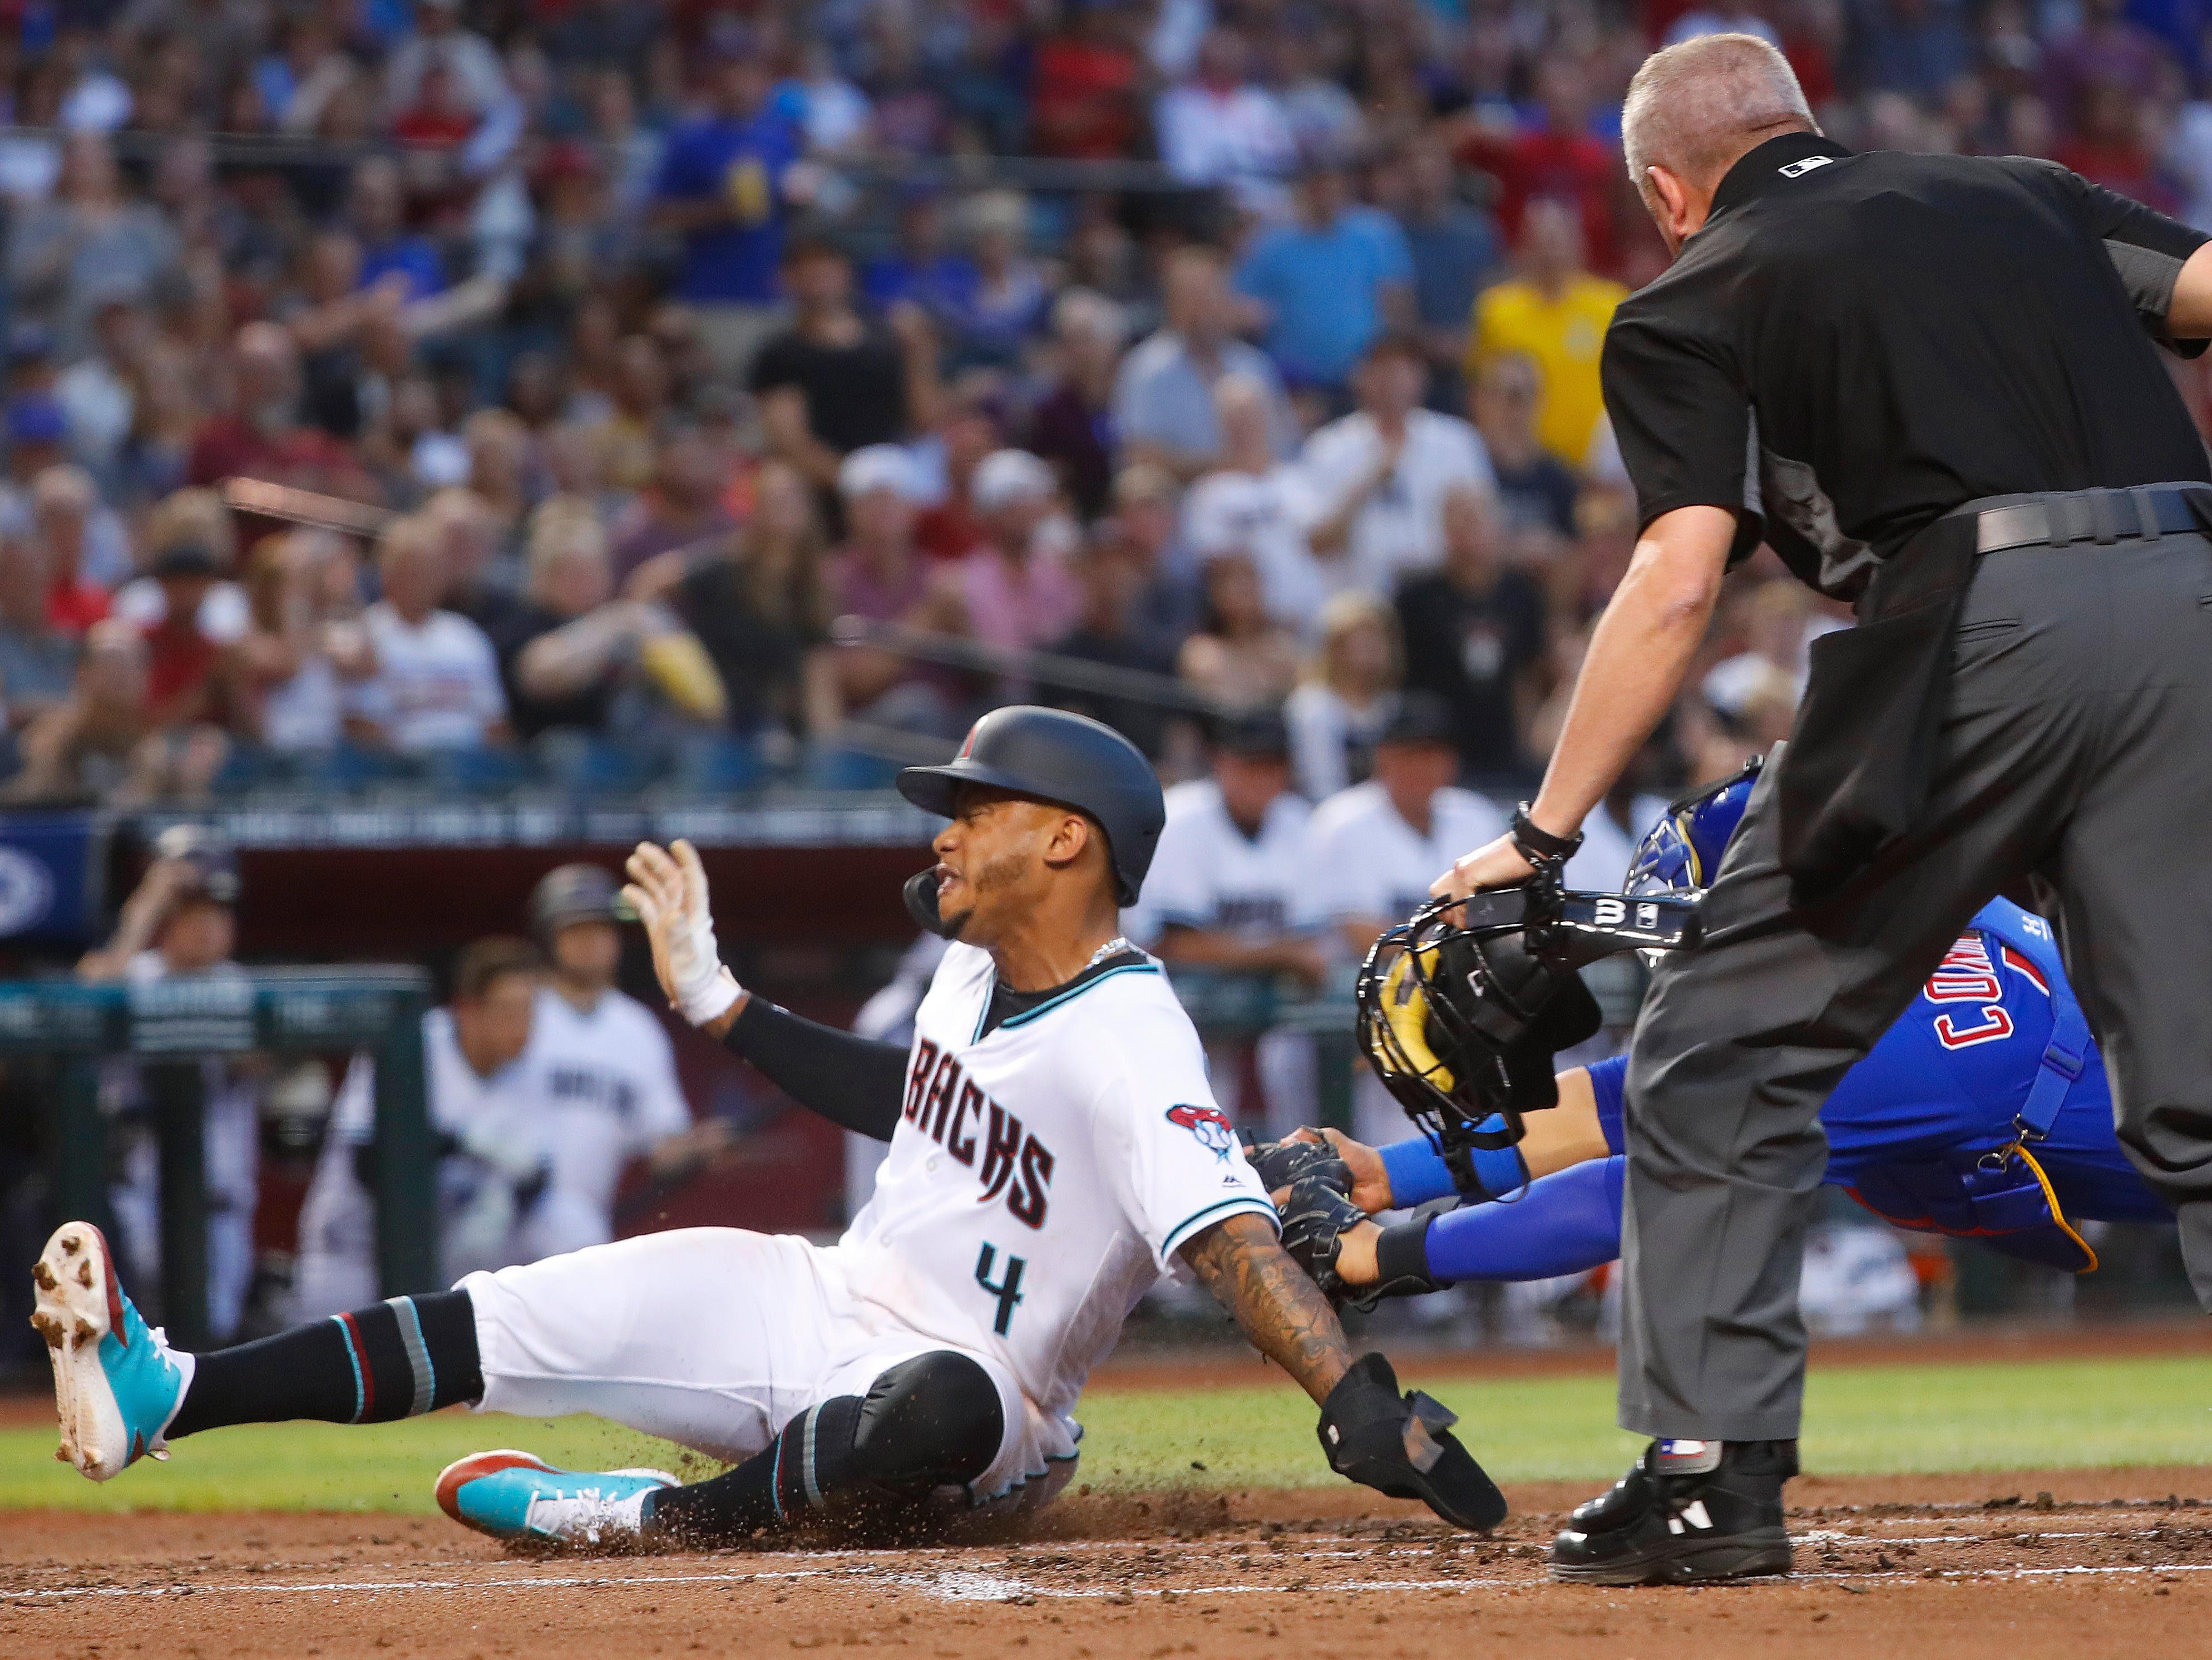 Diamondbacks' Ketel Marte (4) slides safely in past the tag of Cubs' Willson Contreras (40) during the first inning at Chase Field in Phoenix, Ariz. on April 26, 2019.